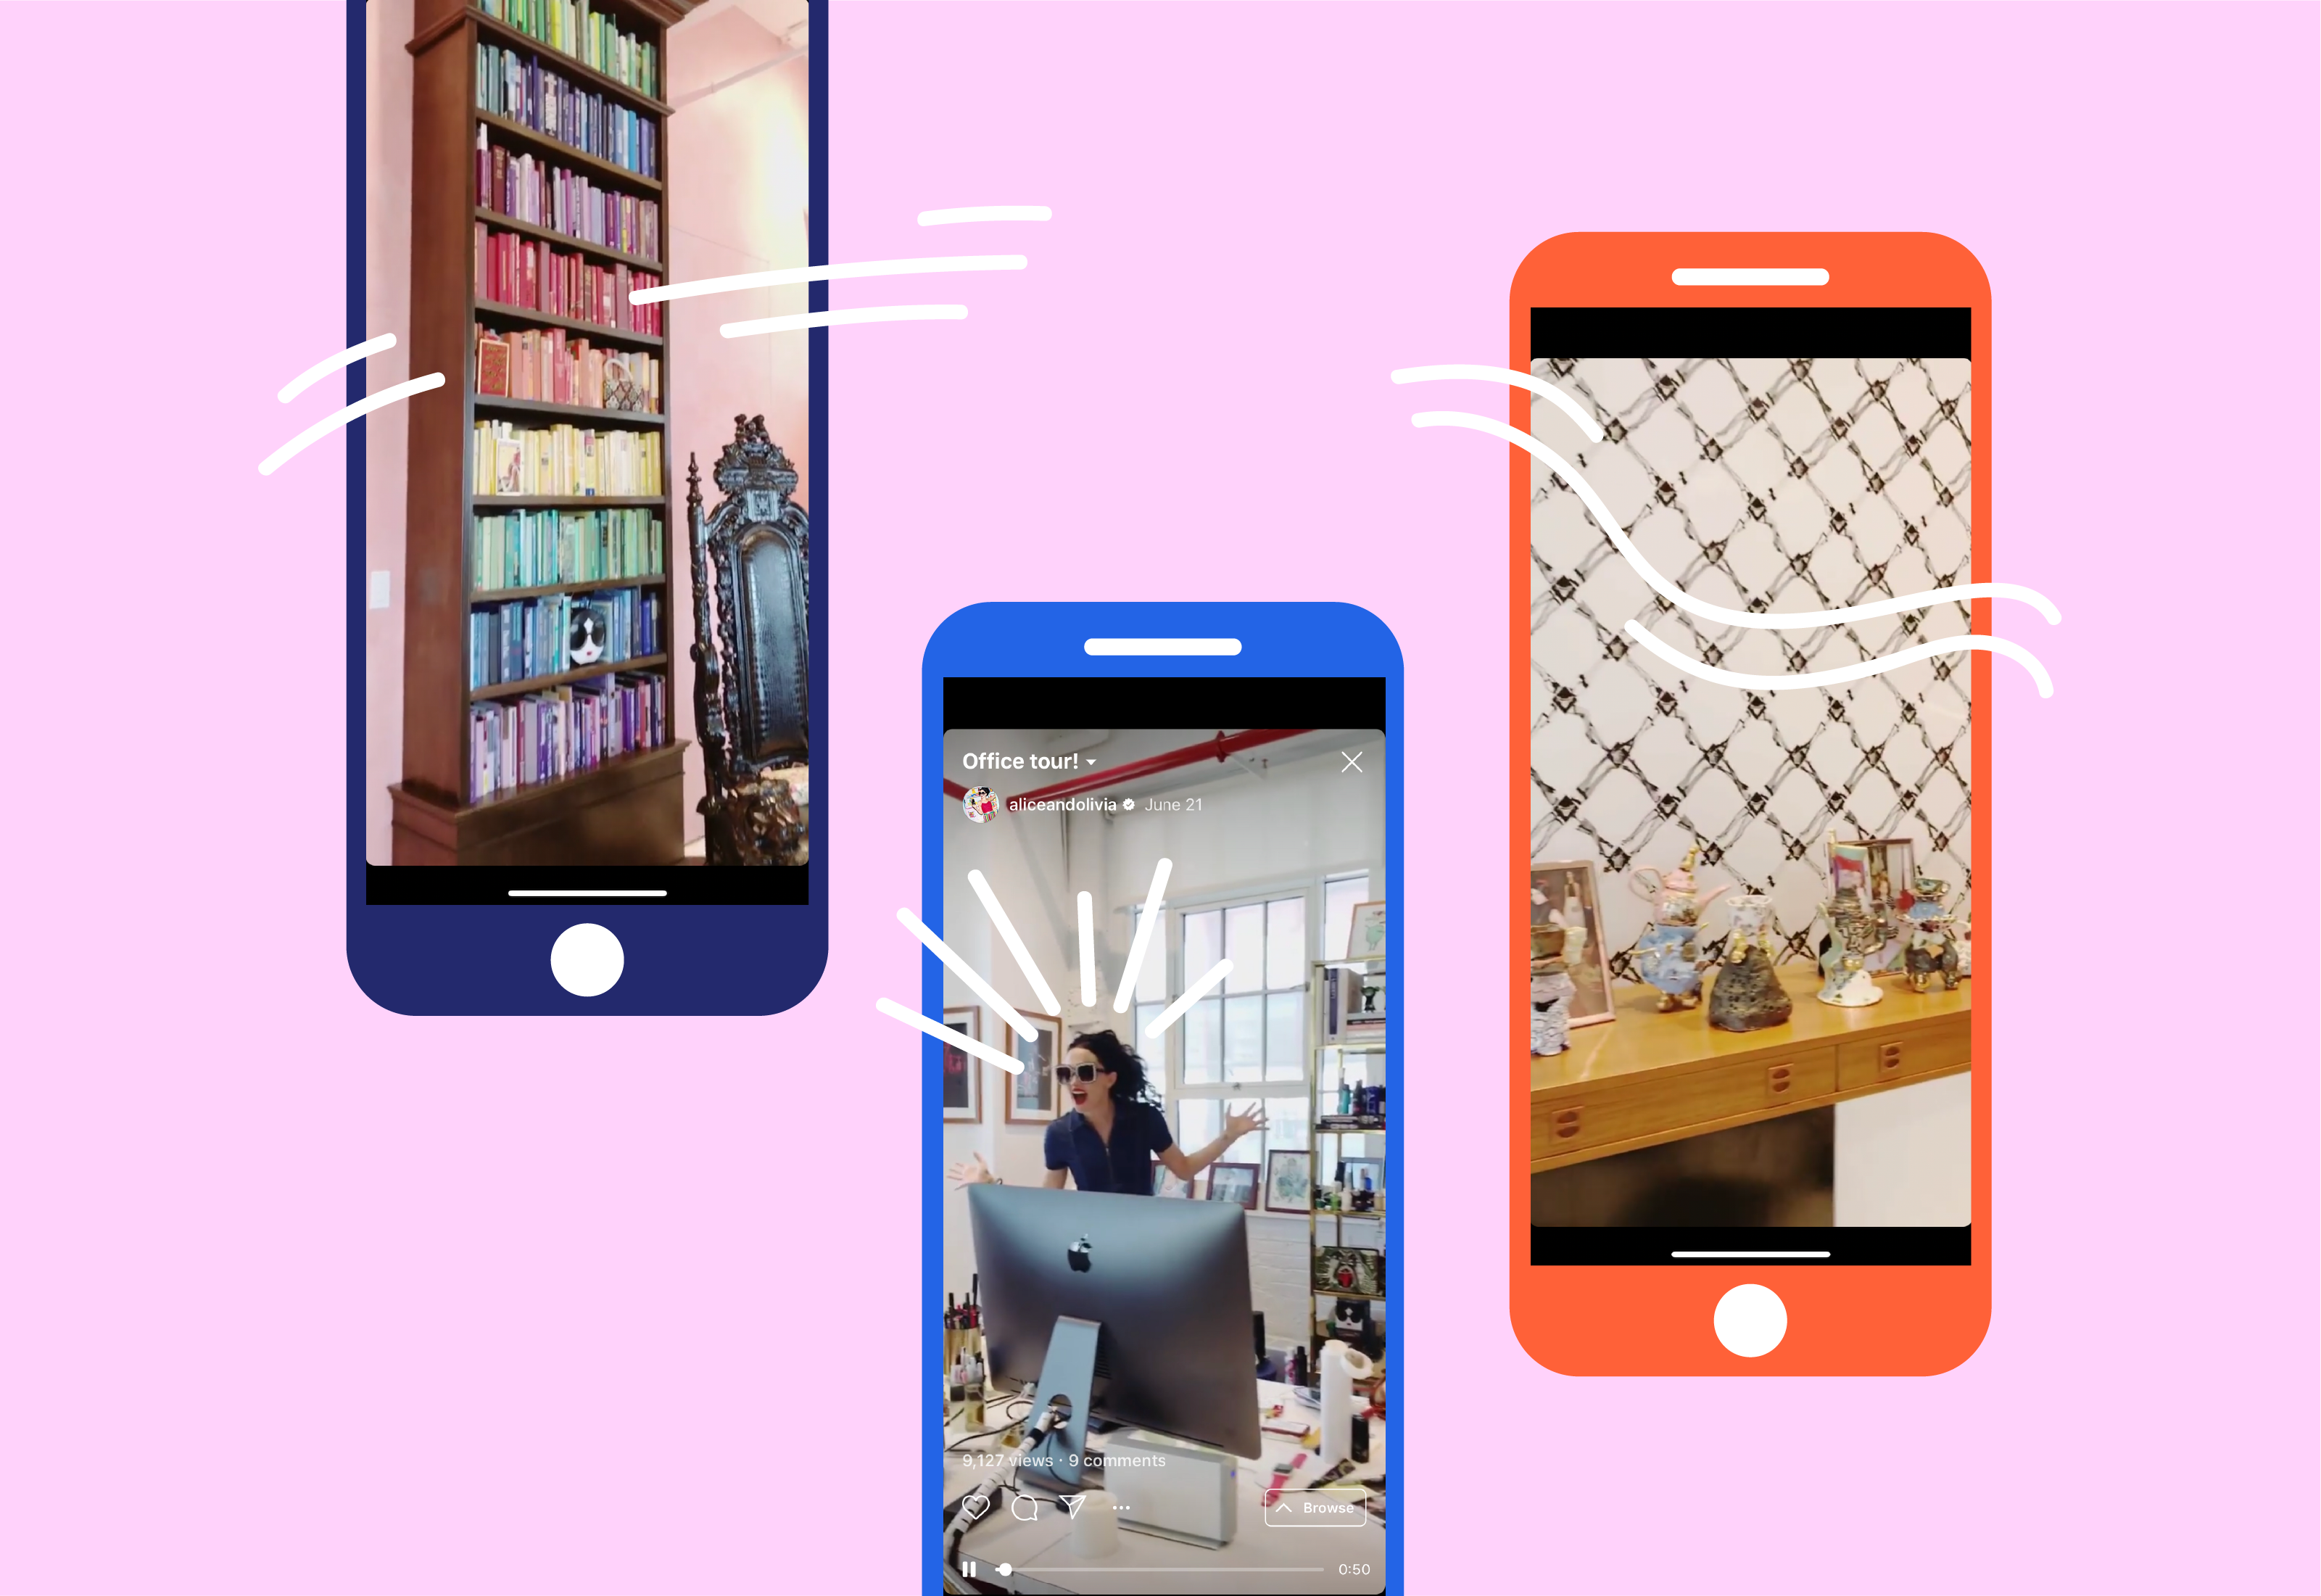 vertical video is one of the best video formats